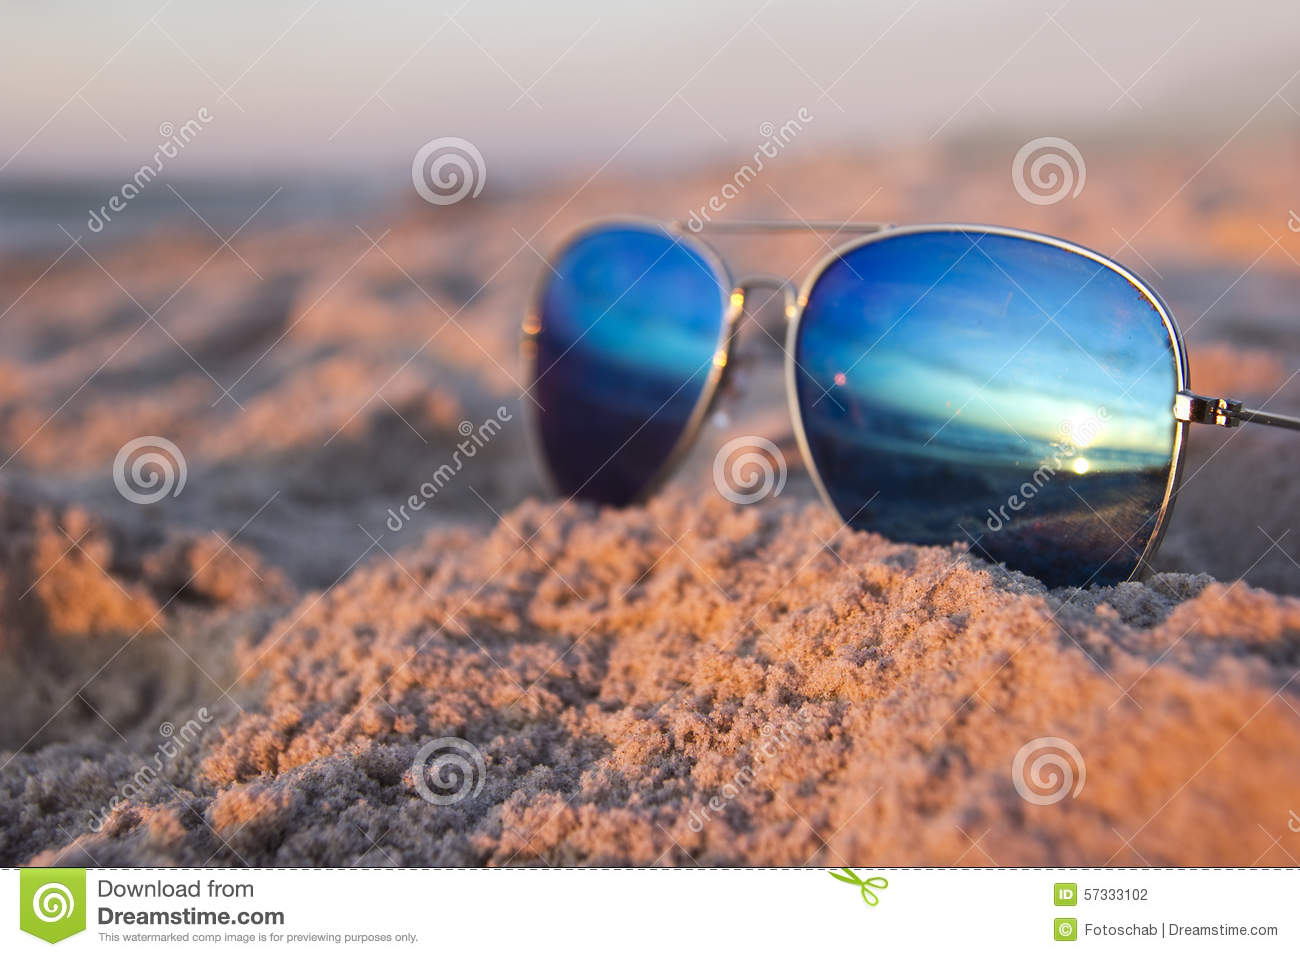 Sunglasses At The Beach Stock Photo - Image: 57333102